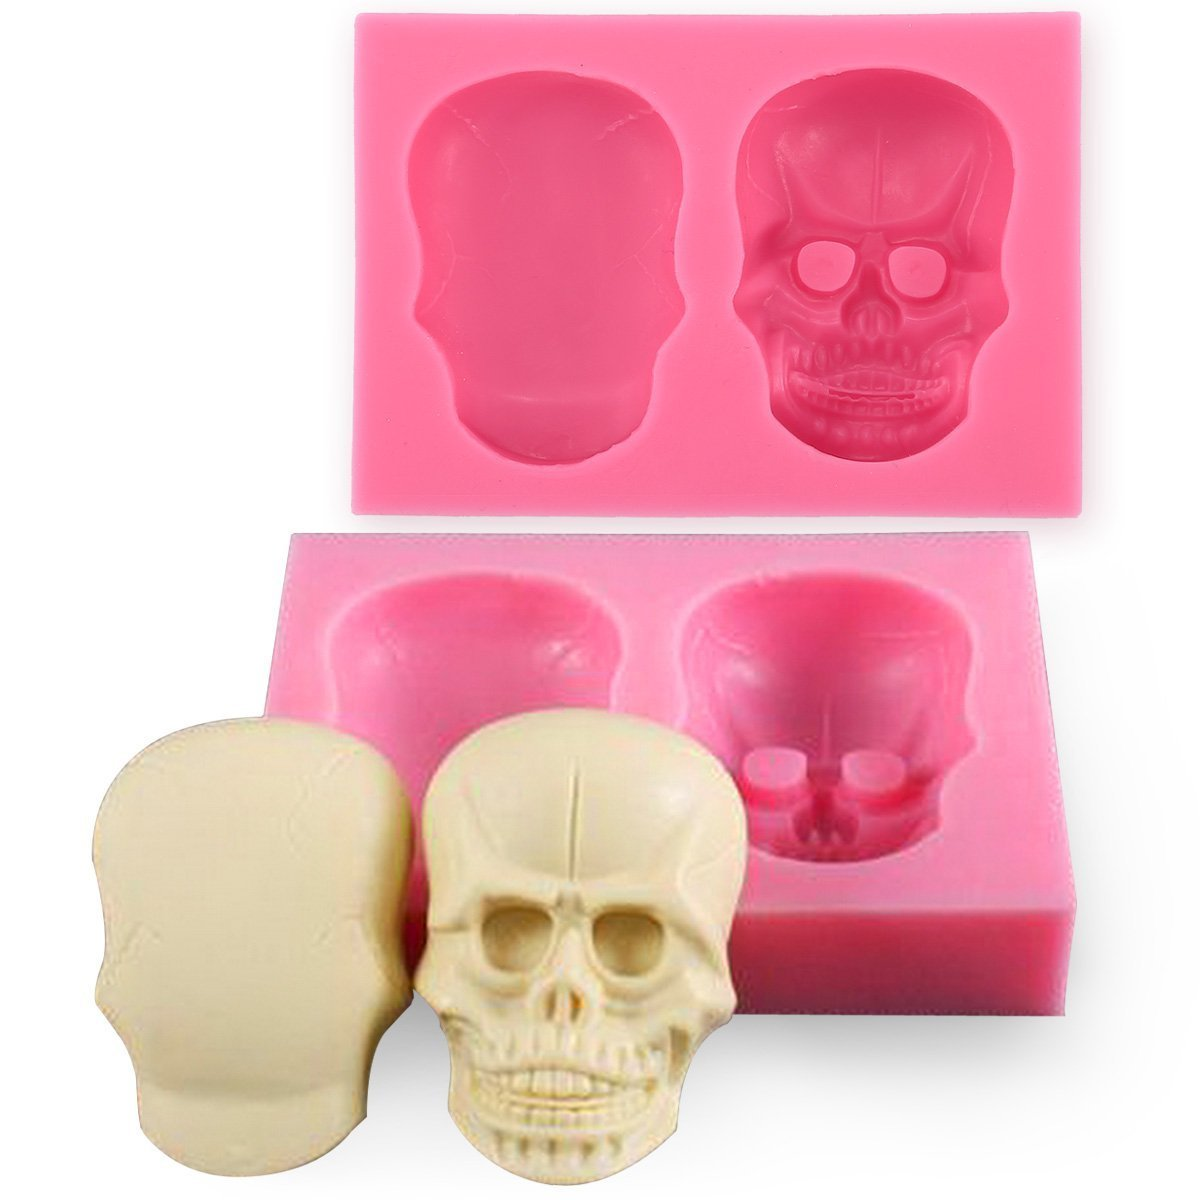 Joinor 3D Skull Silicone Mould Fondant Sugar Clay Jewellery Fimo Button Cake Mold